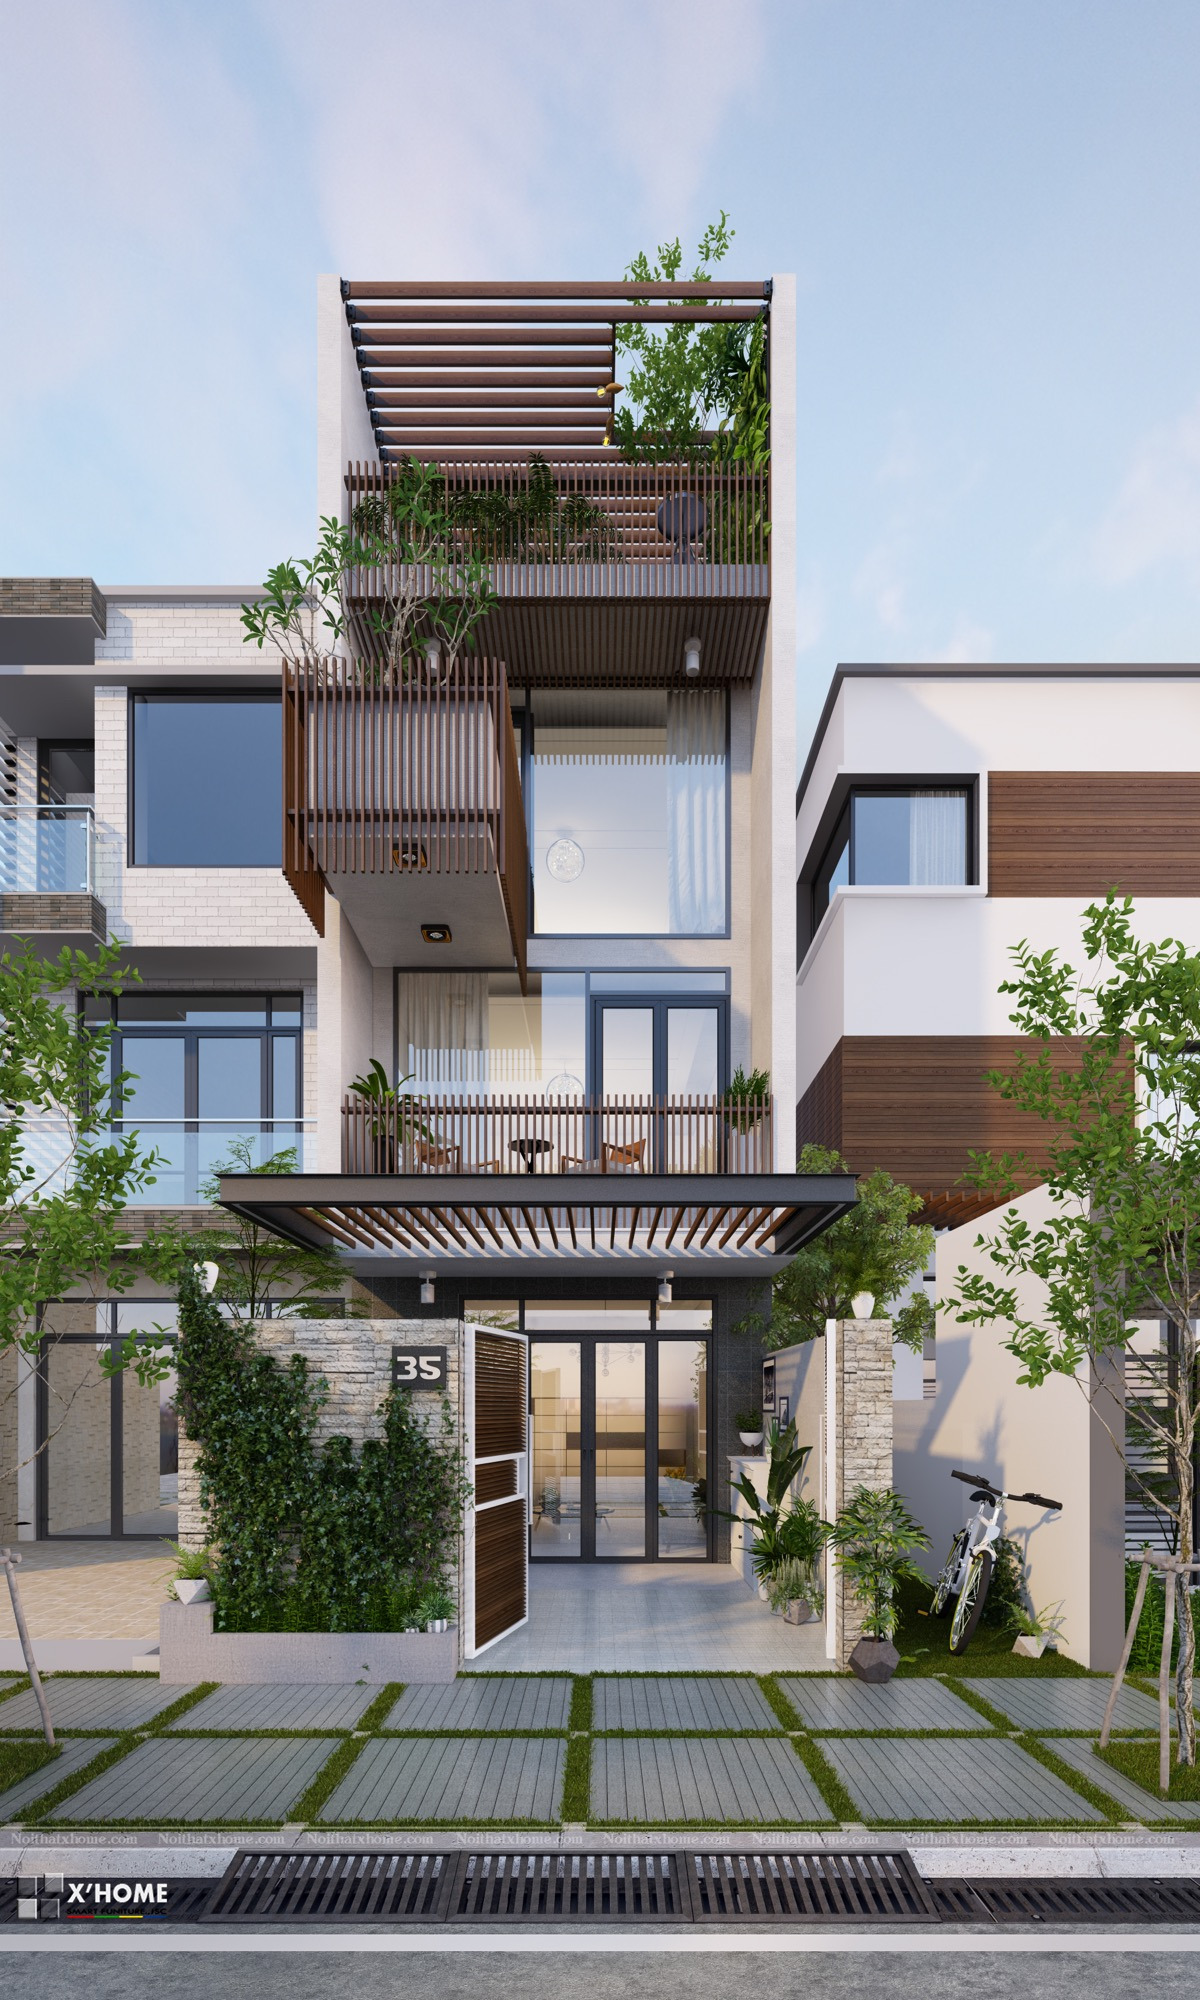 Modern Home Front View Design Luxury 50 Narrow Lot Houses that Transform A Skinny Exterior Into